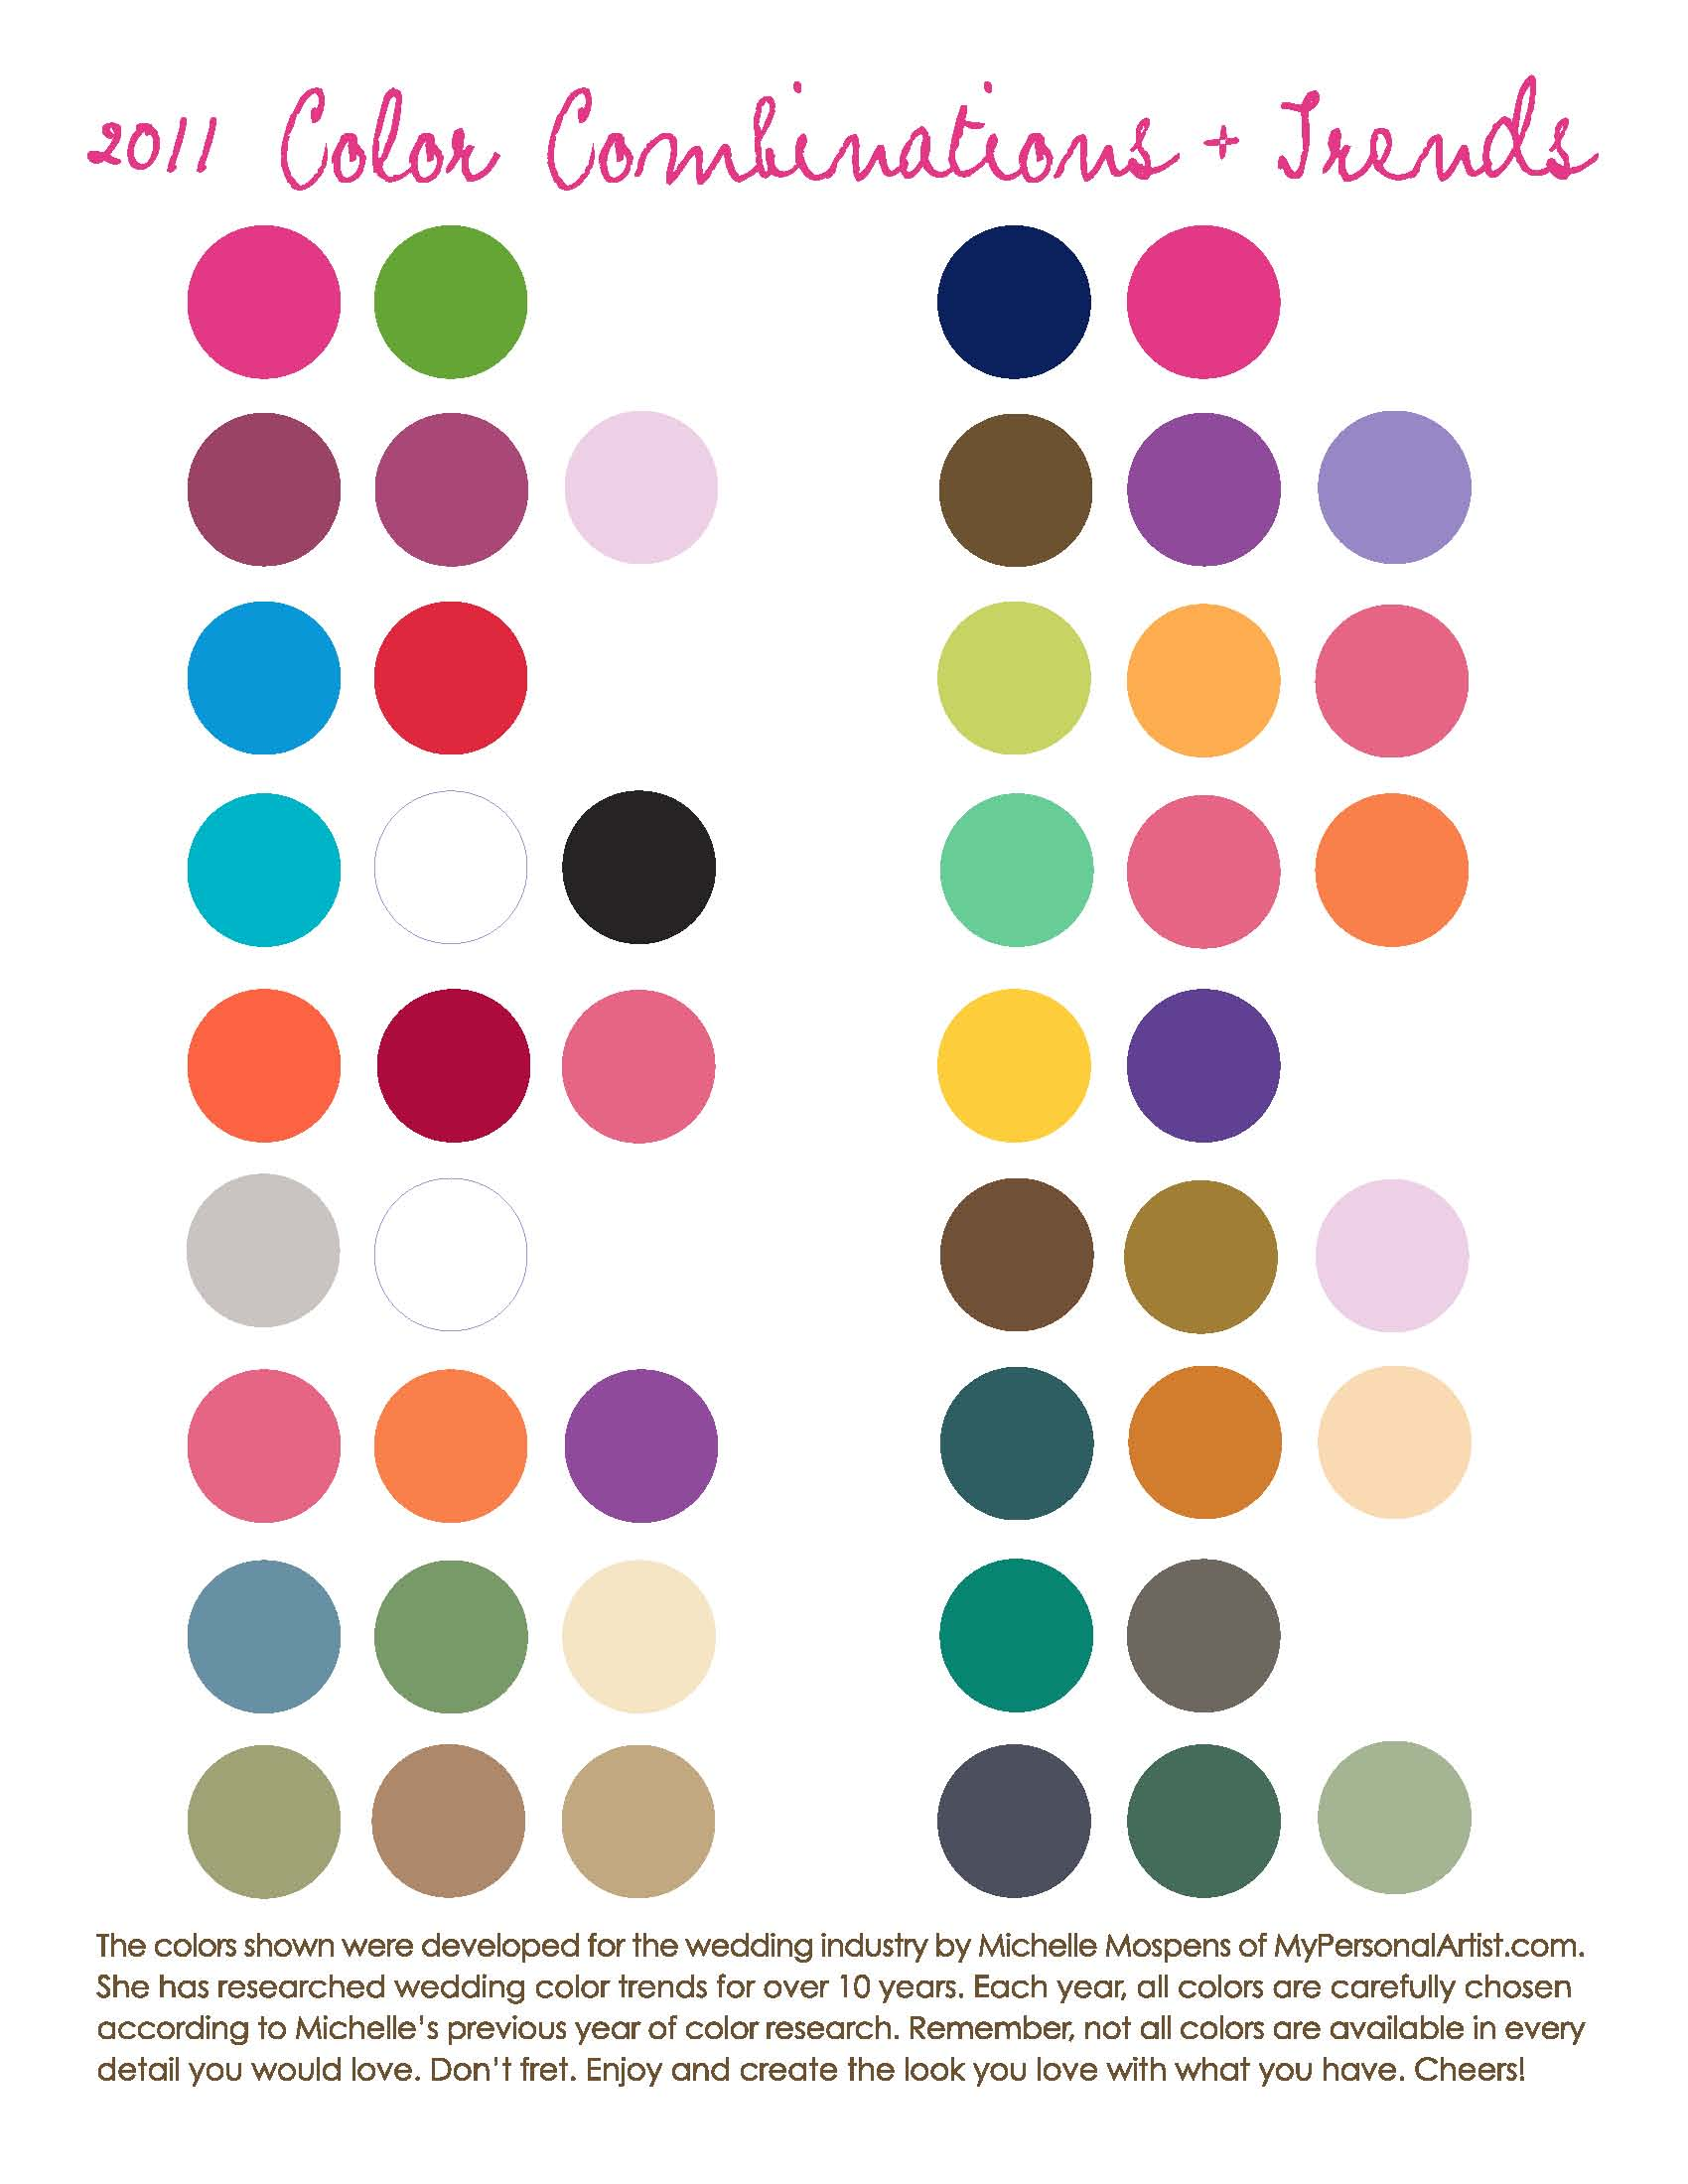 Delightful Wedding Color Trends For 2011 Amazing Ideas